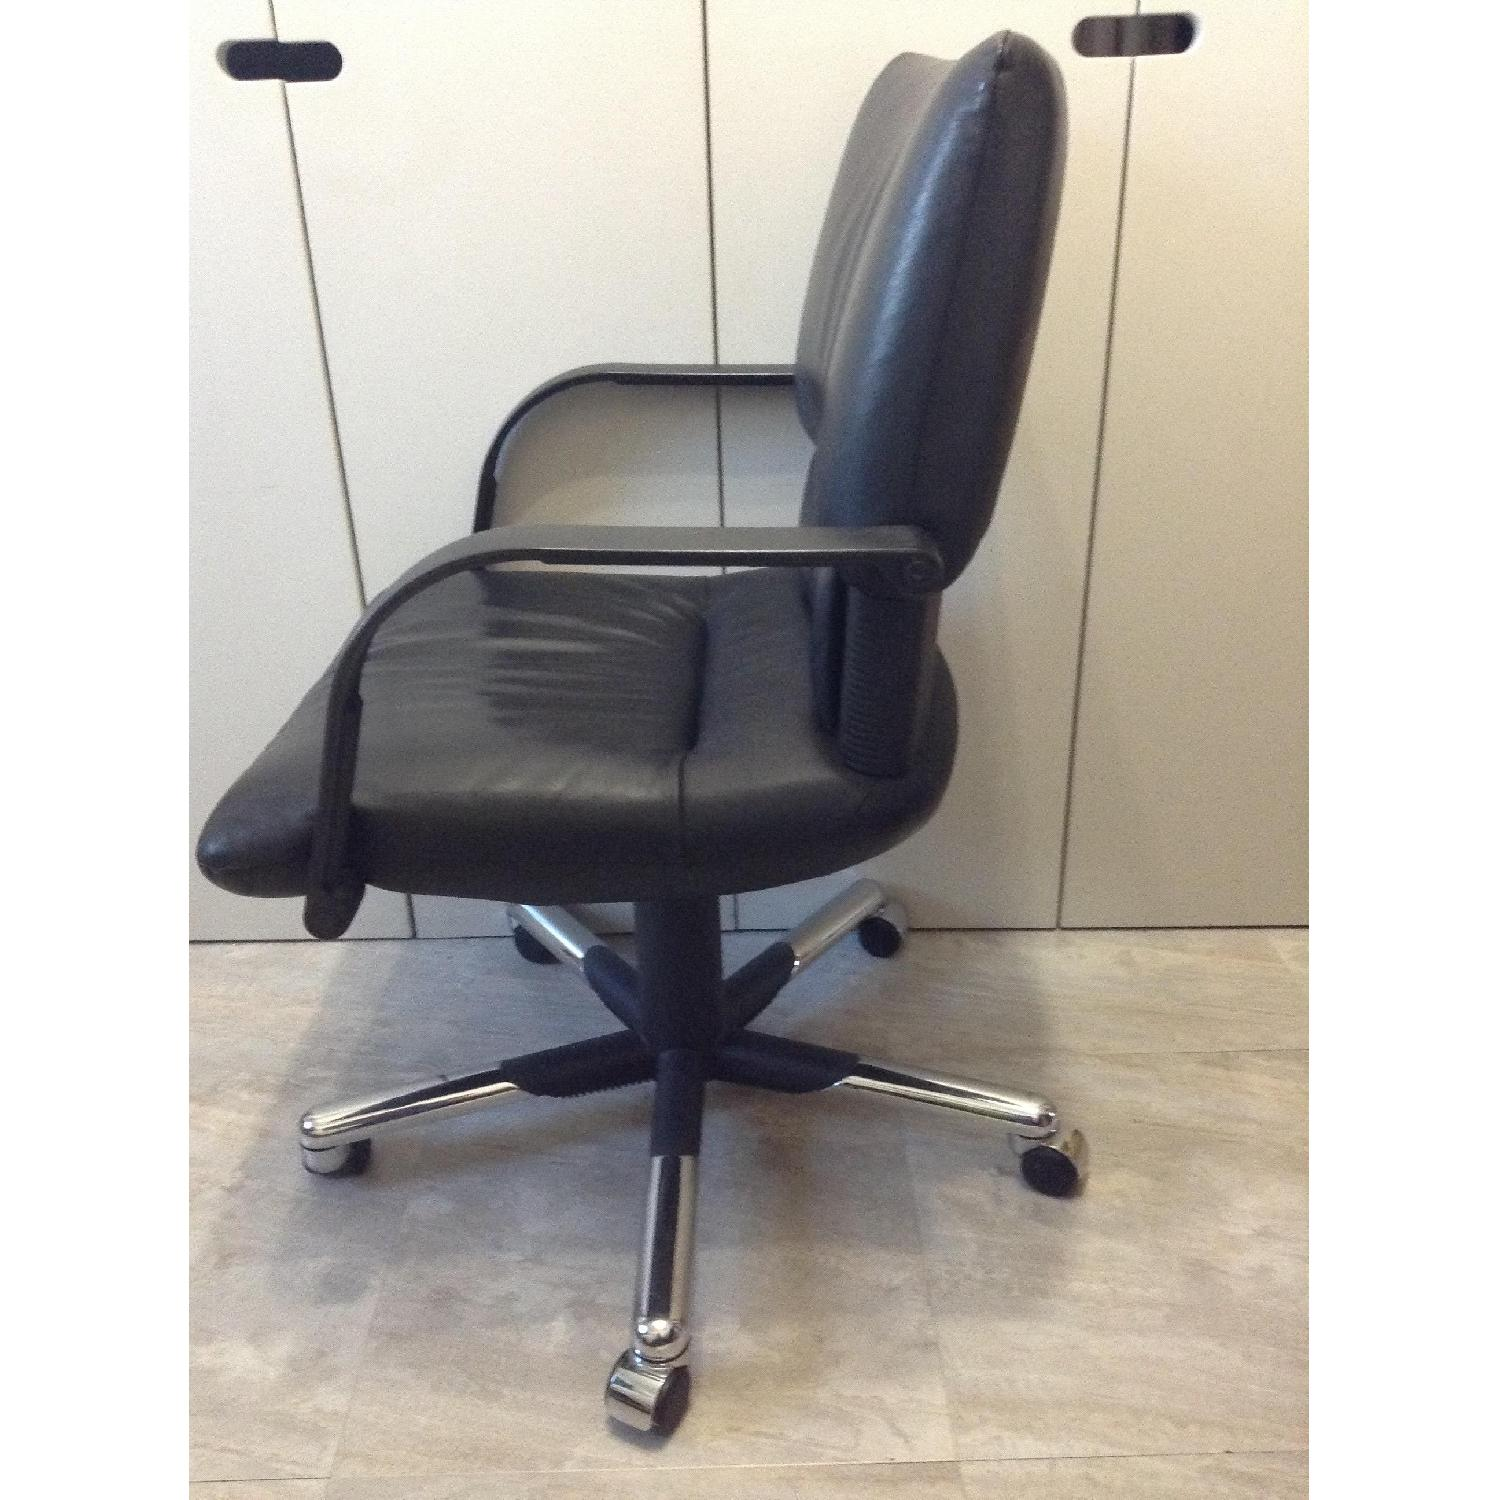 Vitra Black Leather Swivel Chair By Mario Bellini - image-3